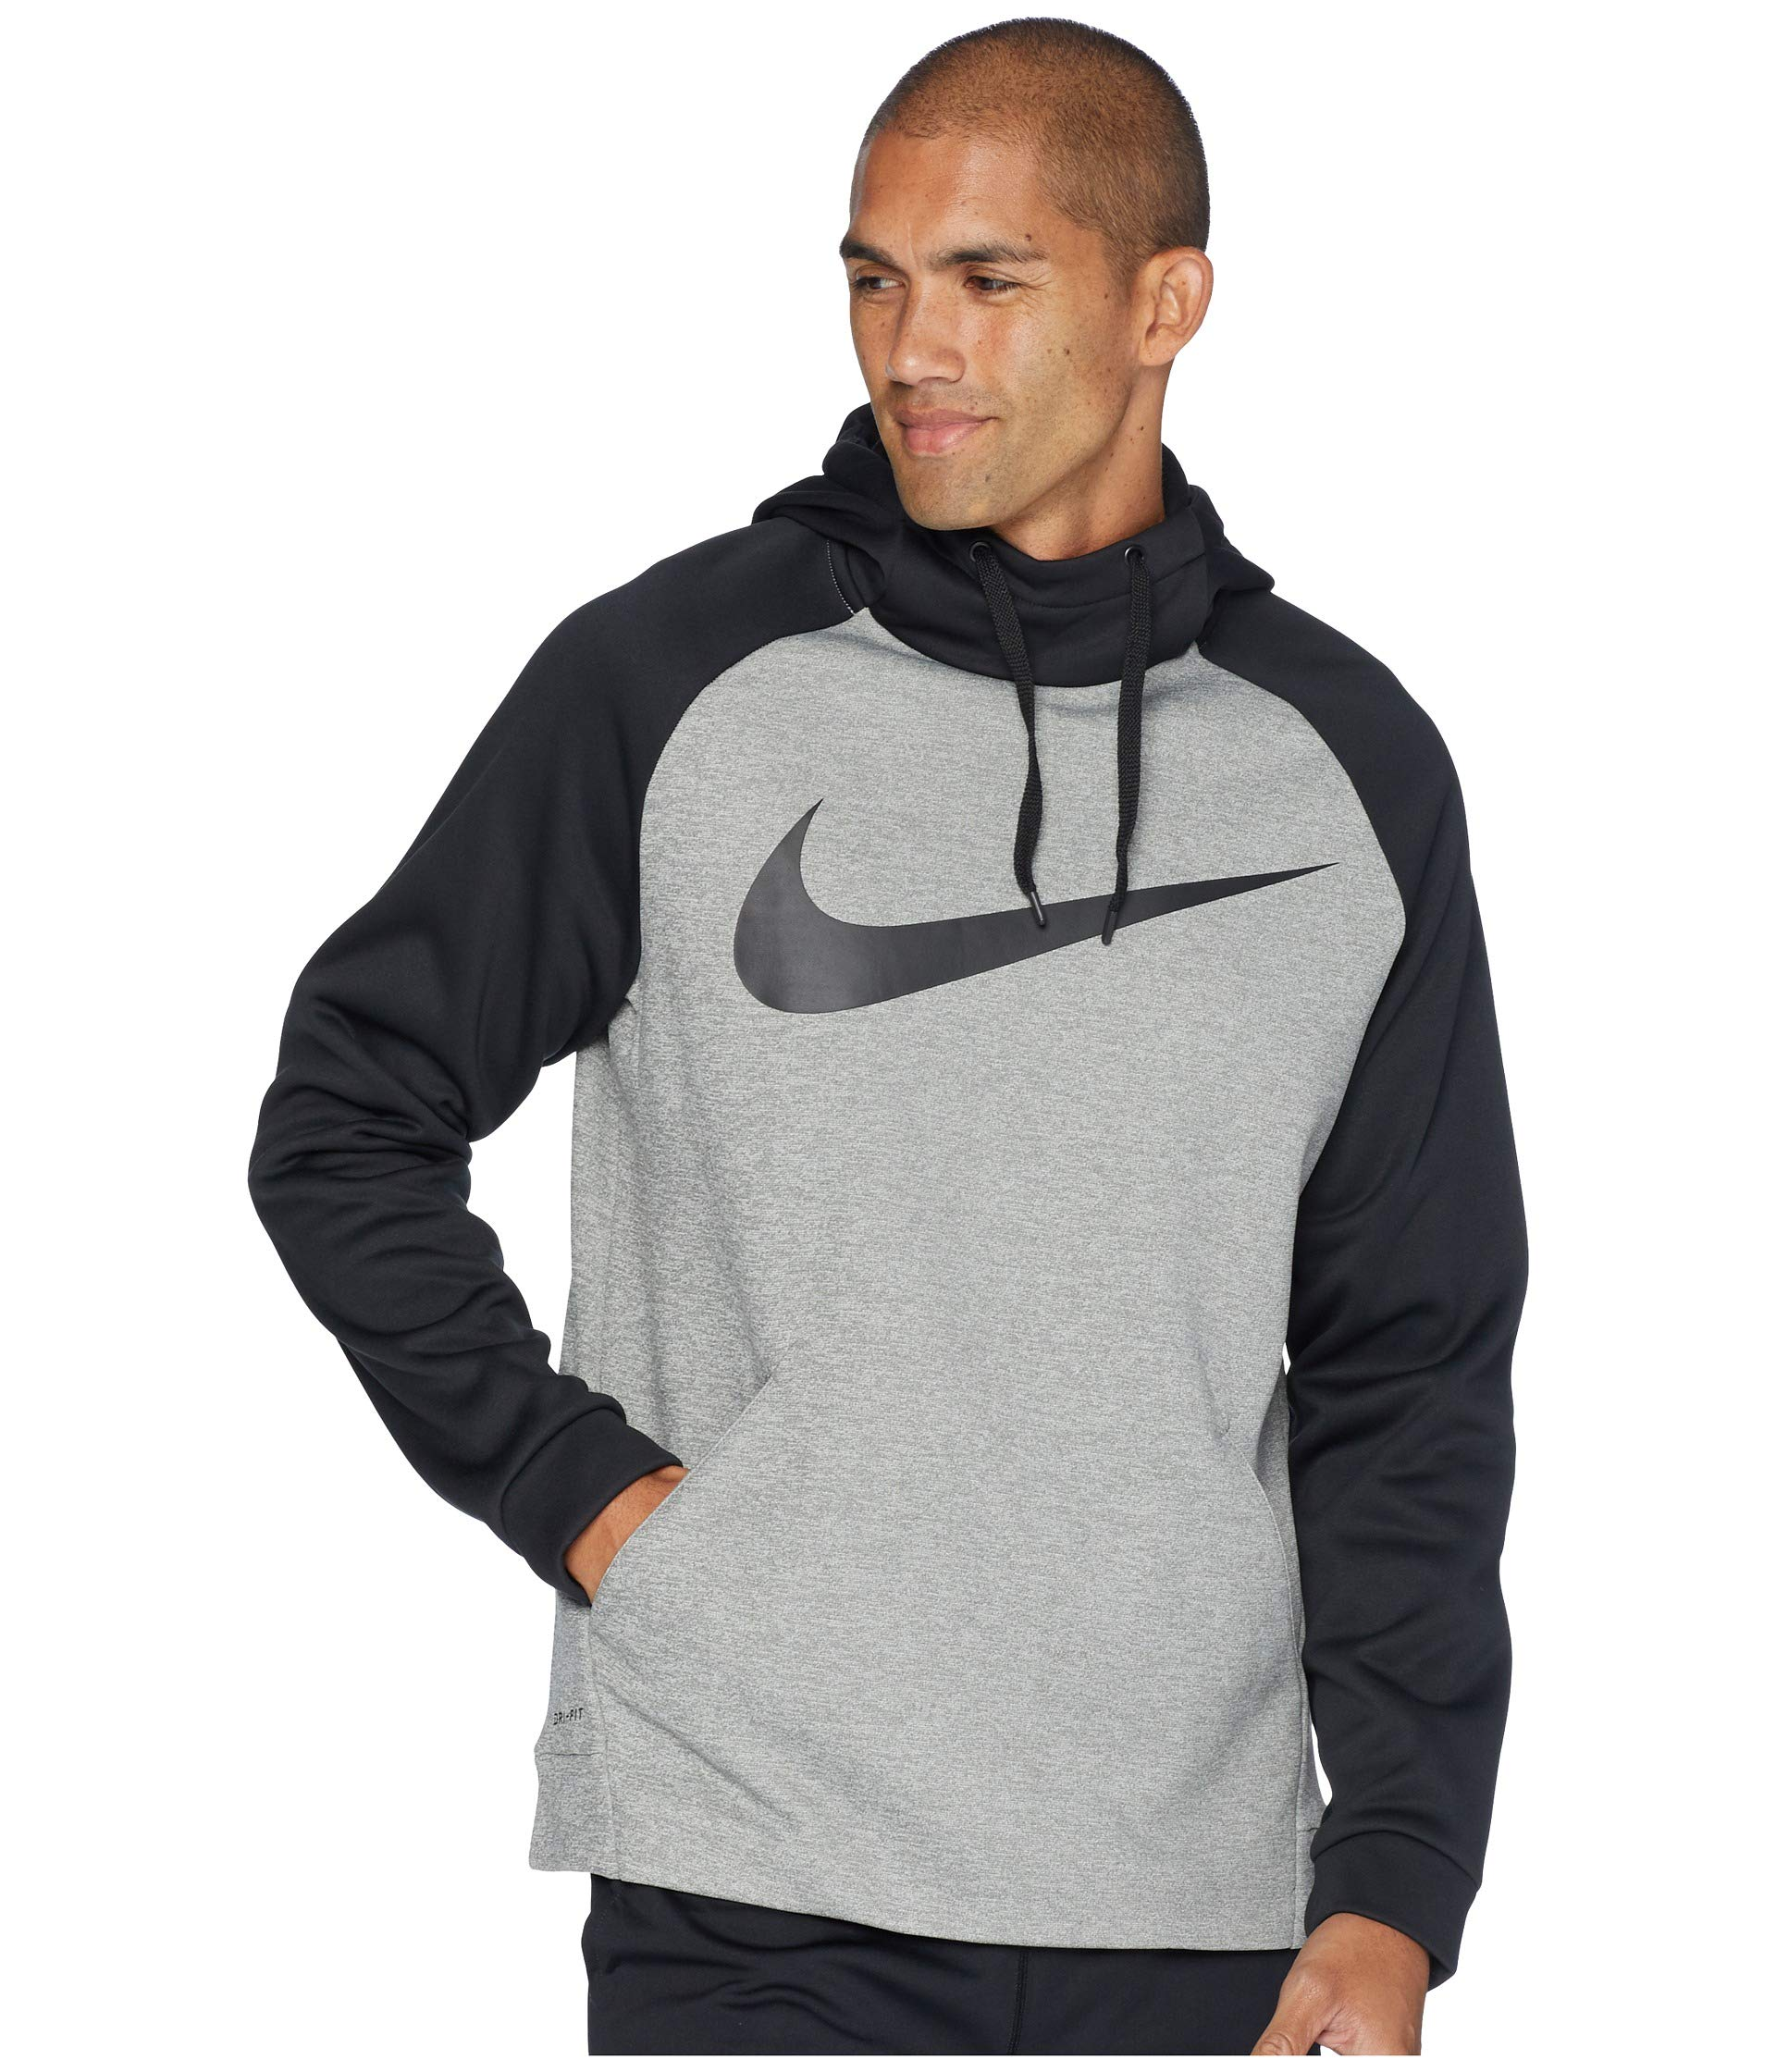 Nike Men's Therma Swoosh Training Hoodie Dark Grey Heather/Black Size Small by Nike